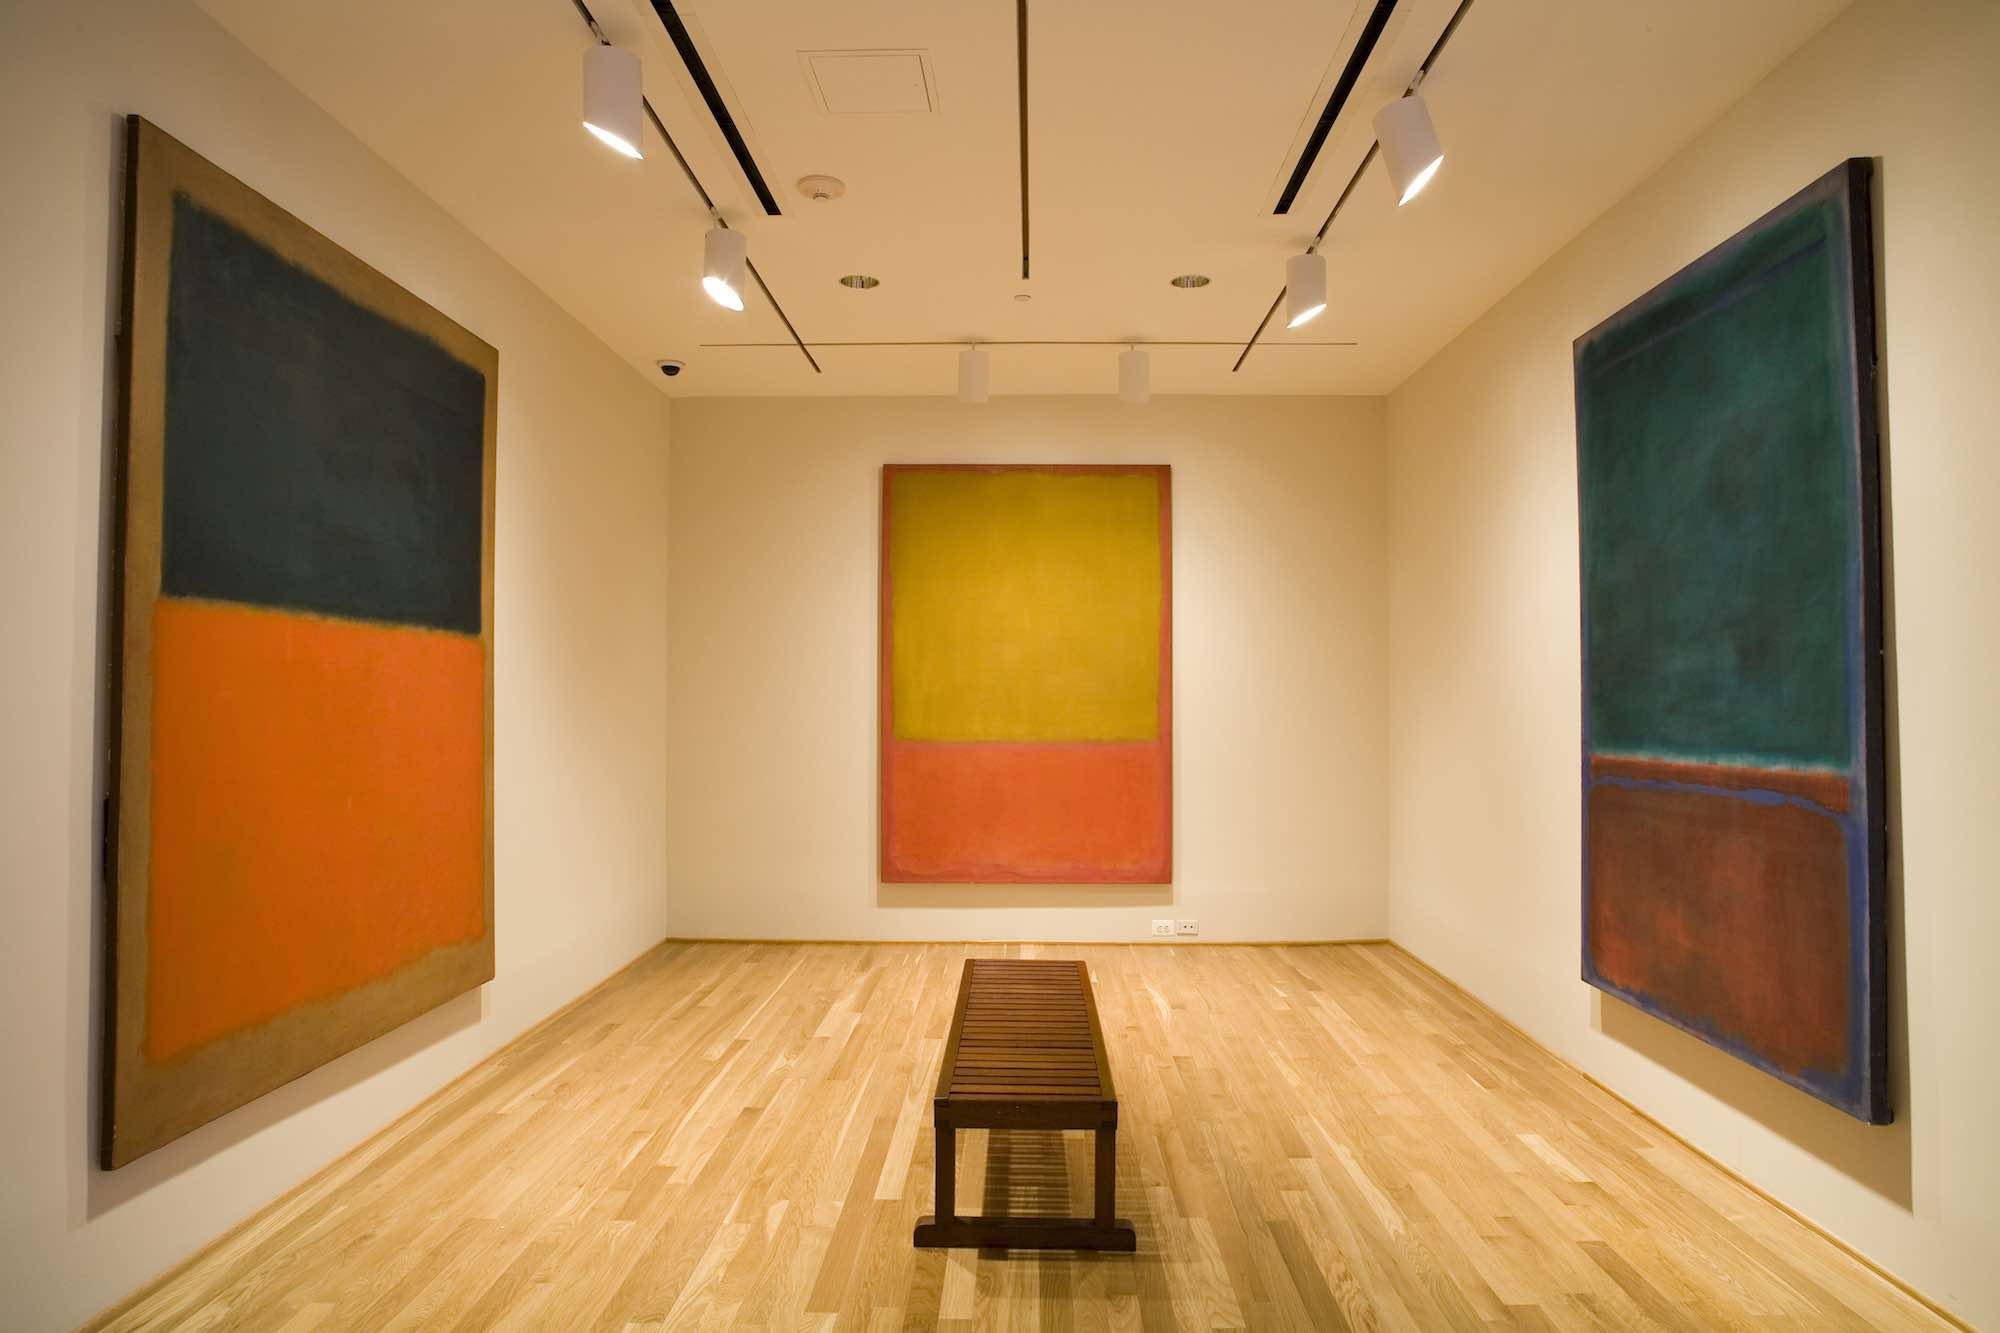 Photo by Robert Lautman. The Rothko Room at The Phillips Collection in Washington, DC.